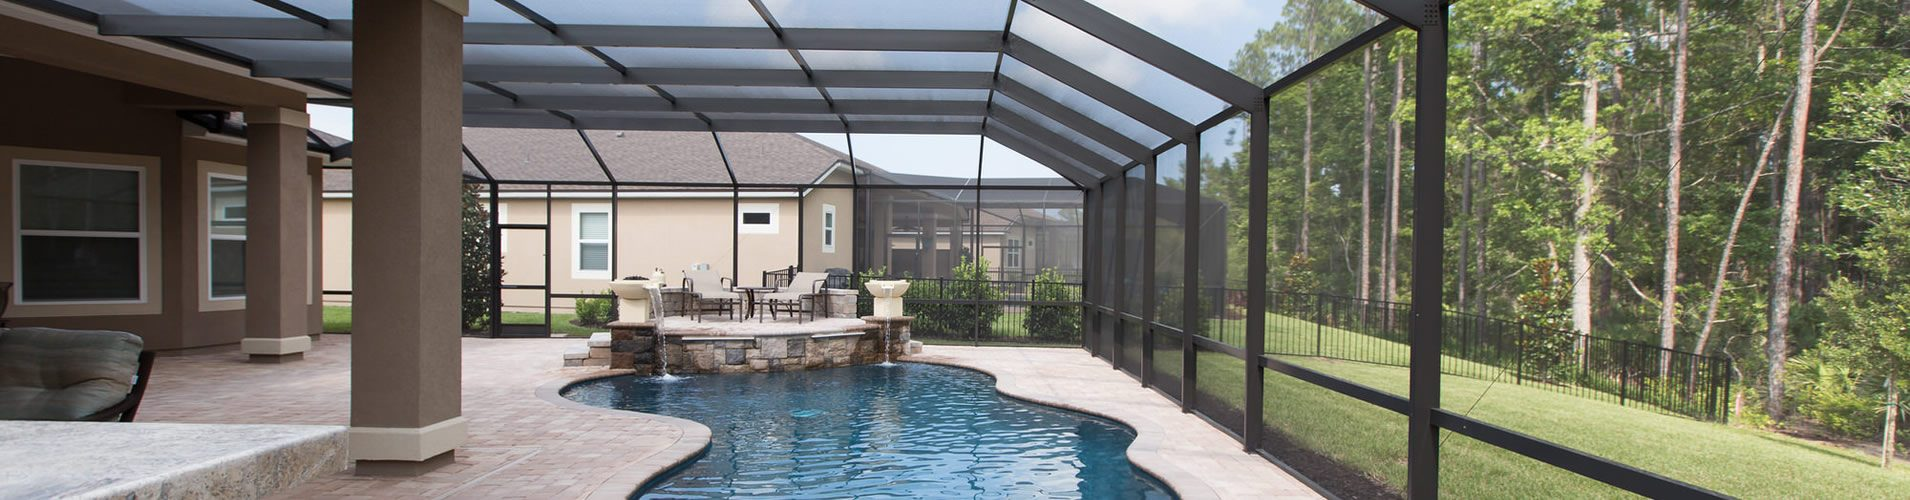 pool-enclosure-murfreesboro-001-1910x500